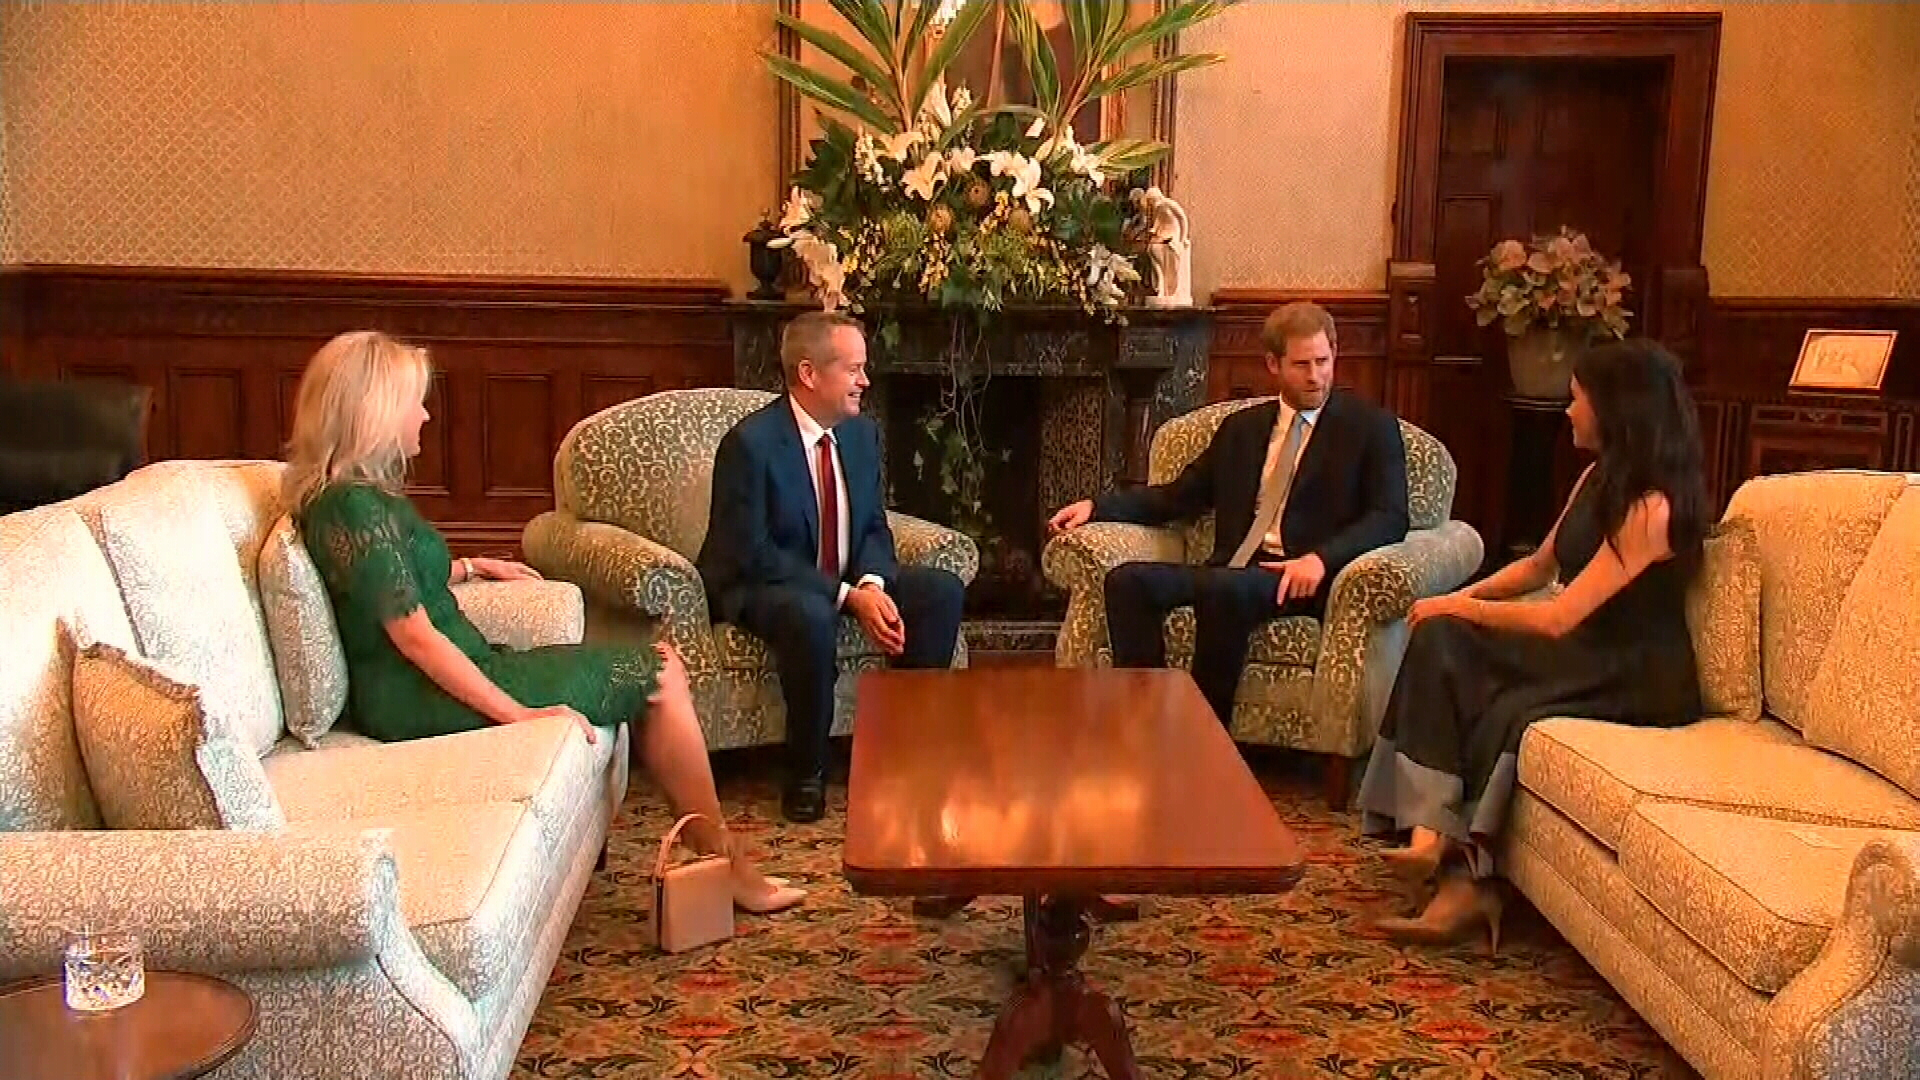 Prince Harry and Meghan meet with Bill Shorten